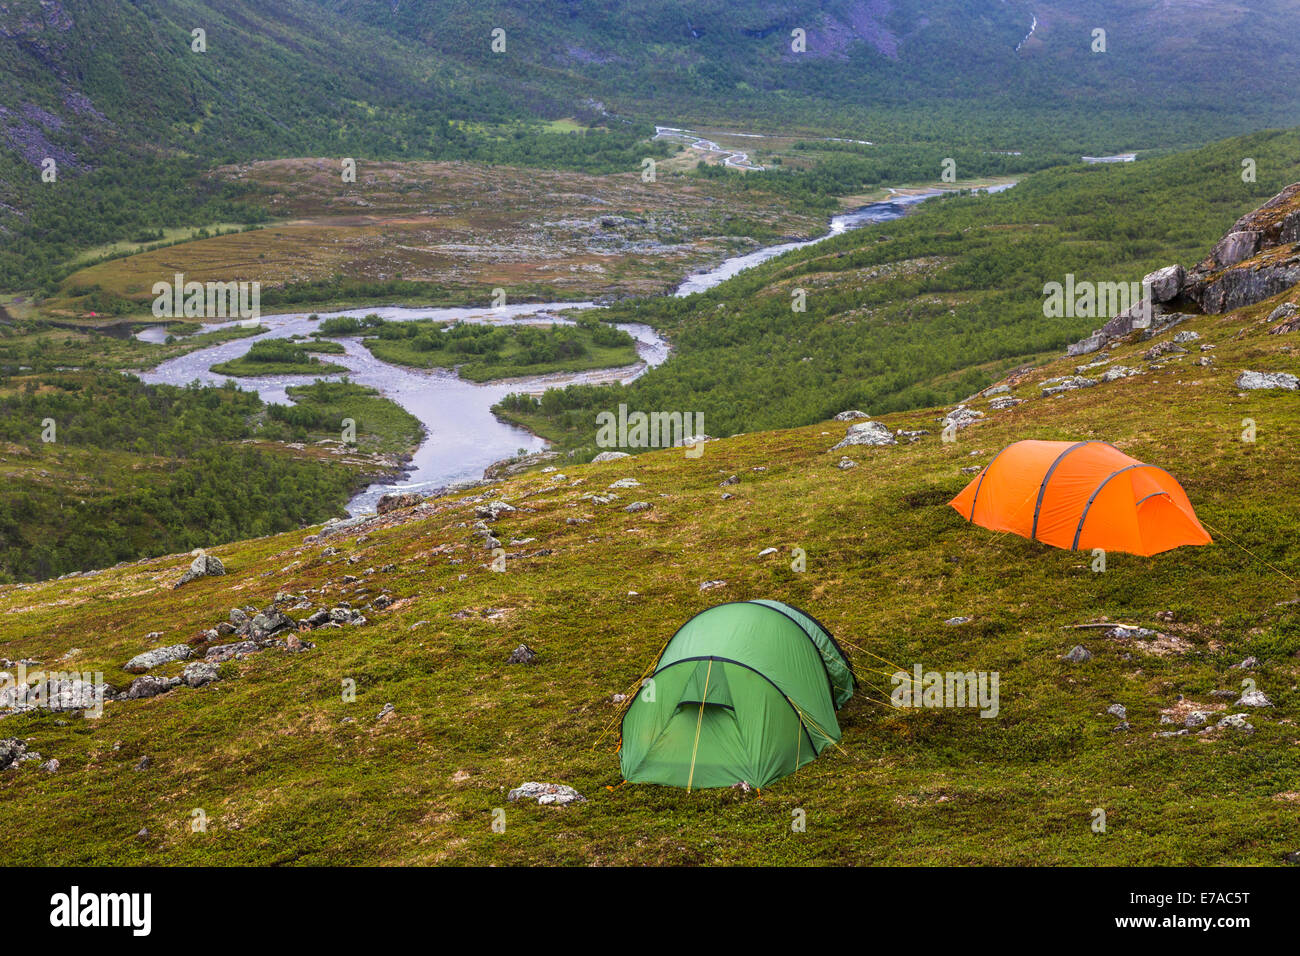 Tents on high altitude with river flowing underneath in stora sjöfallets national park, Gällivare, Swedish - Stock Image